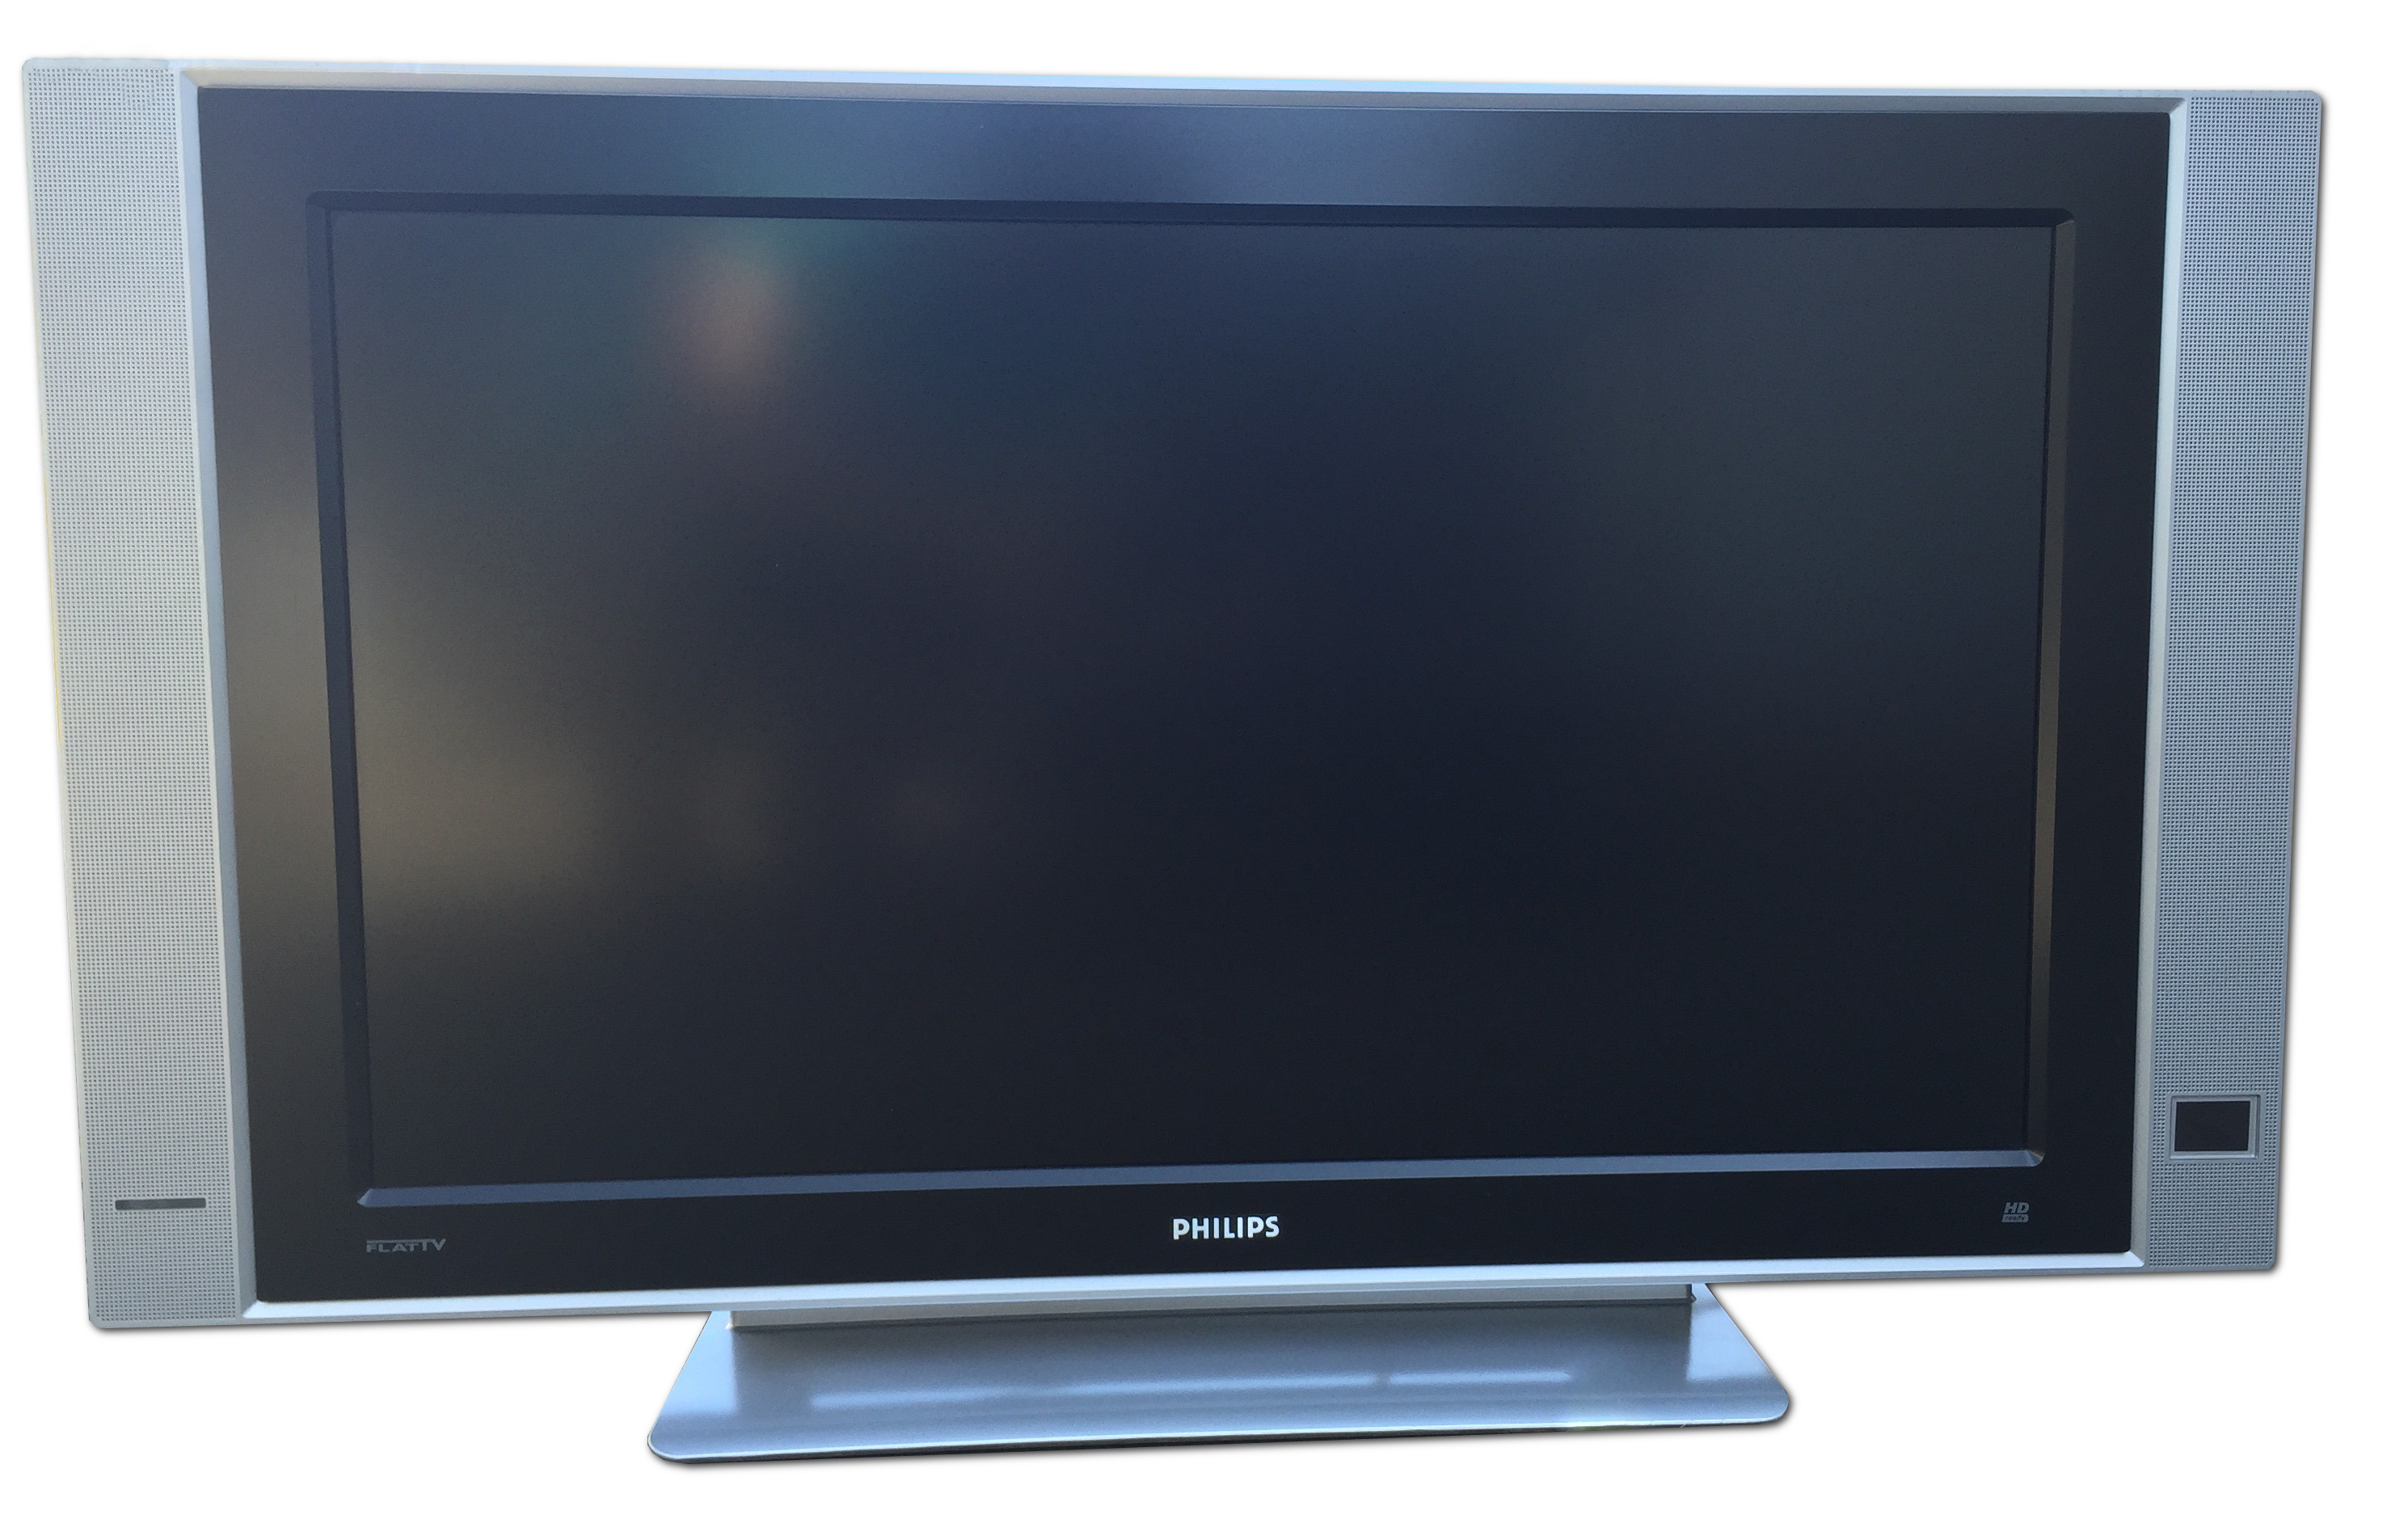 philips 32 81cm 16 9 flat tv lcd fernseher hd ready 2 x. Black Bedroom Furniture Sets. Home Design Ideas